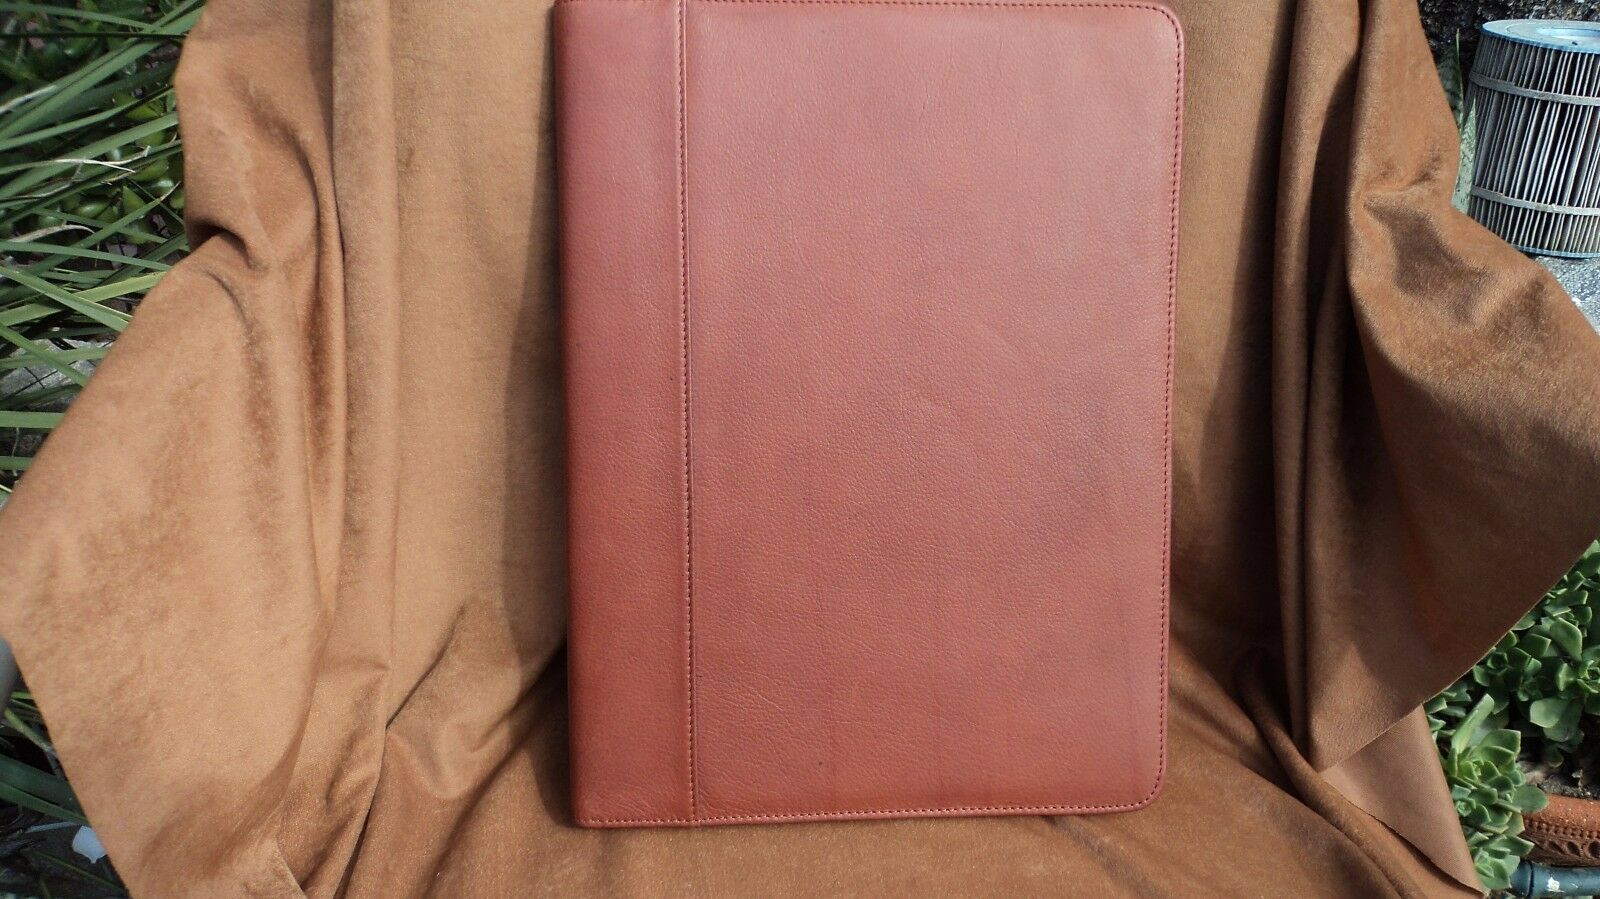 Osgoode Marley 1831 Brandy Cashmere Leather Letter Sized Pad